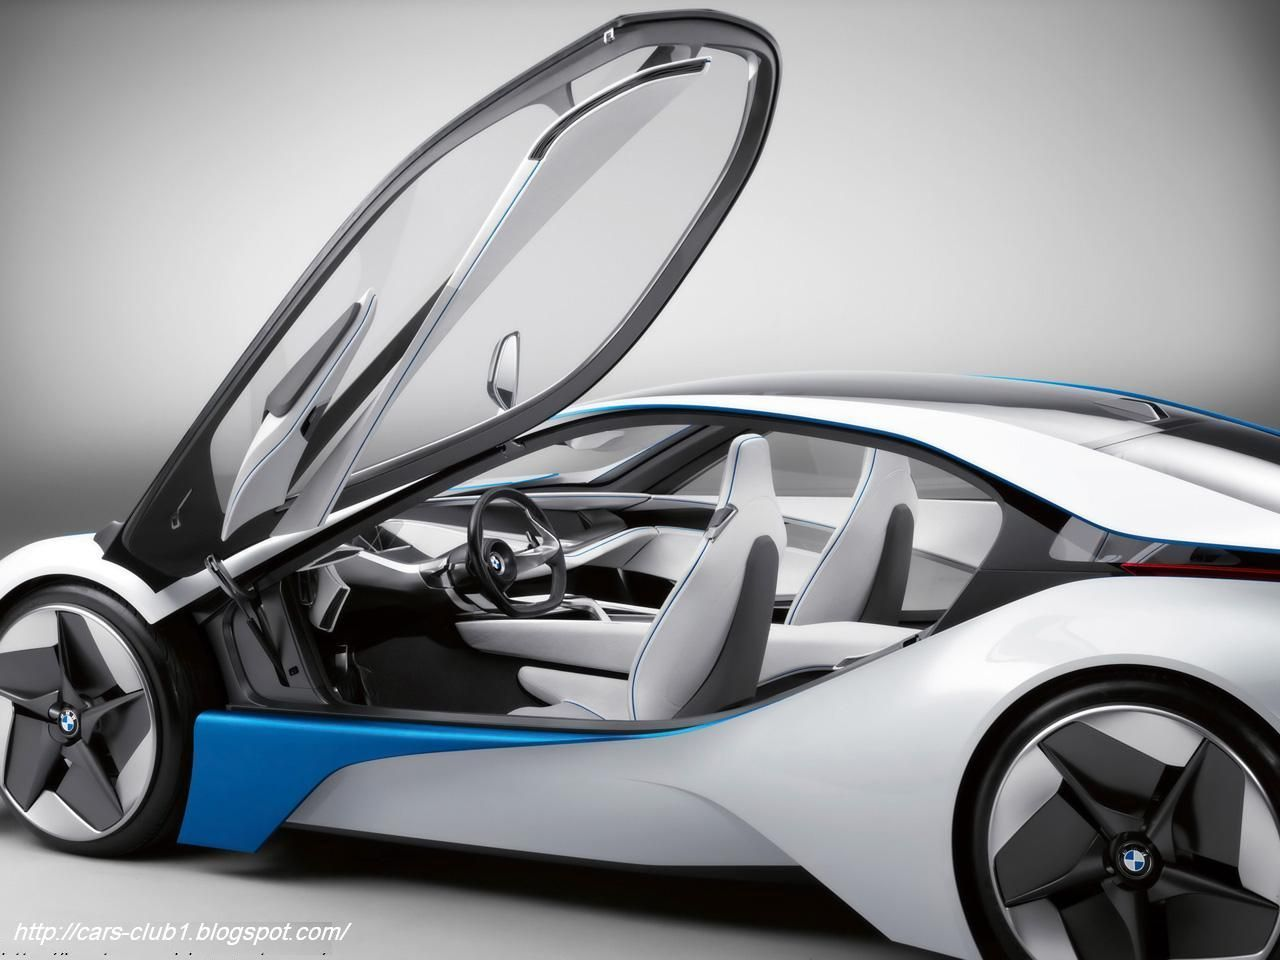 Cars With Butterfly Doors At Duckduckgo Bmw Concept Car Bmw Concept Hybrid Car